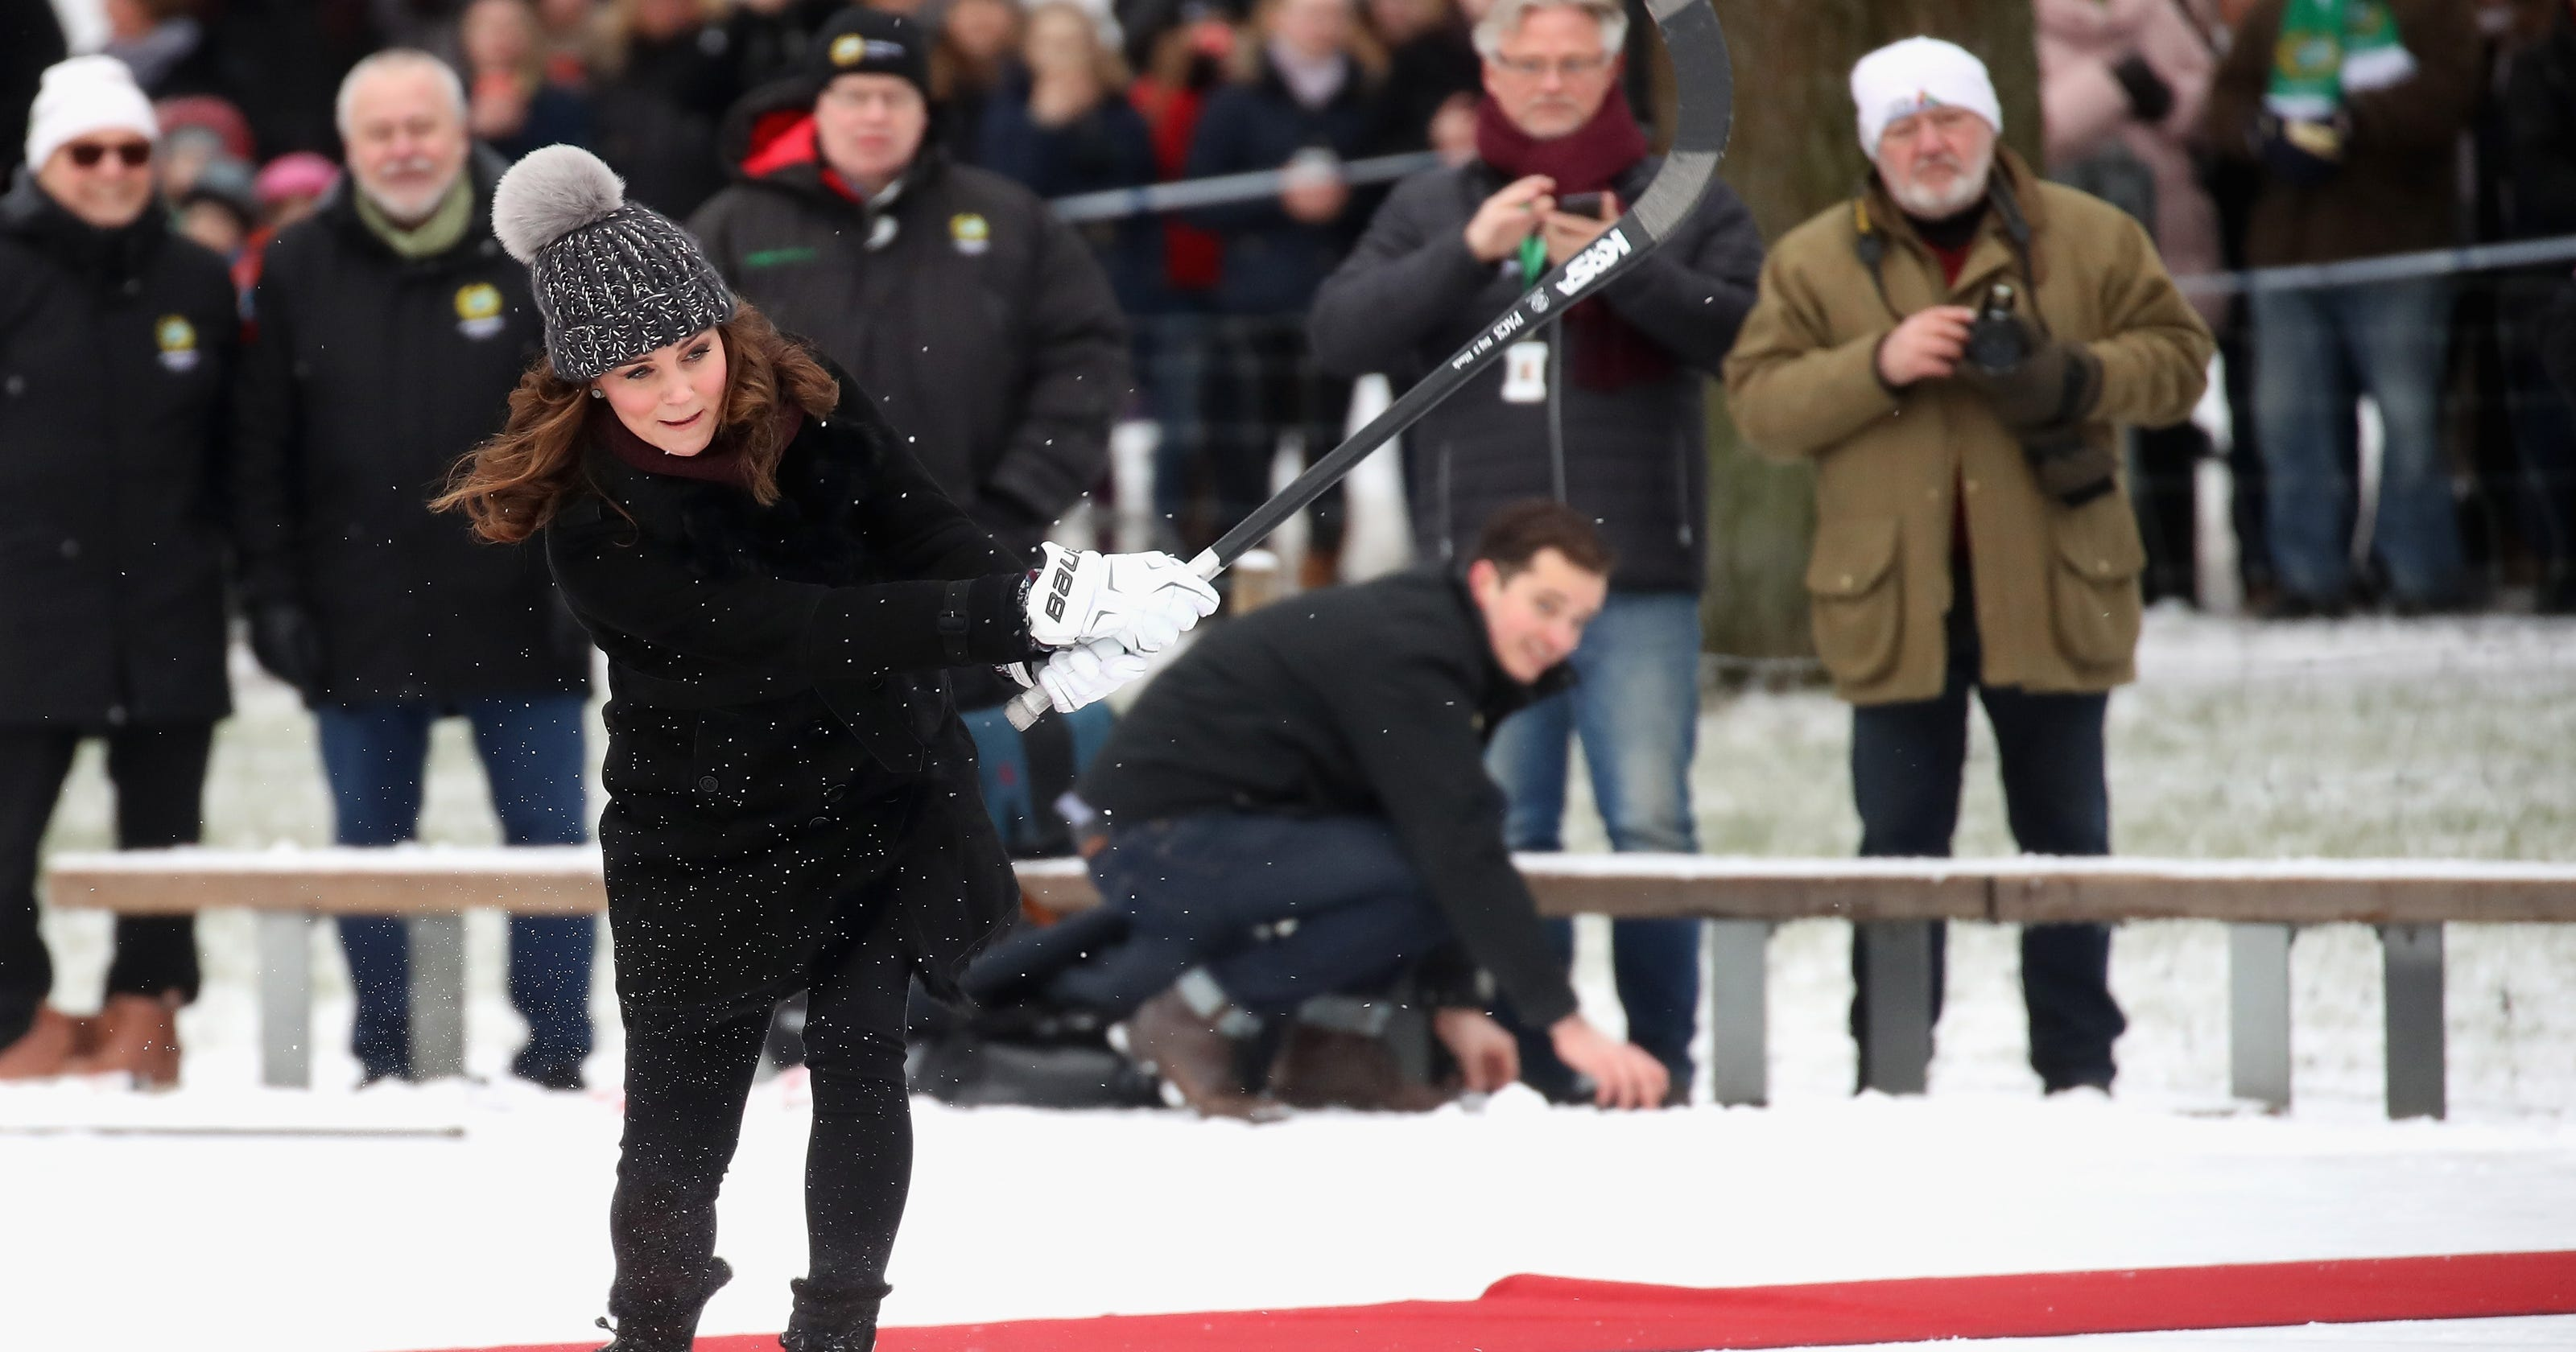 Pregnant Duchess Kate Plays Bandy Hockey In Sweden Rider Sport Boxer R 383